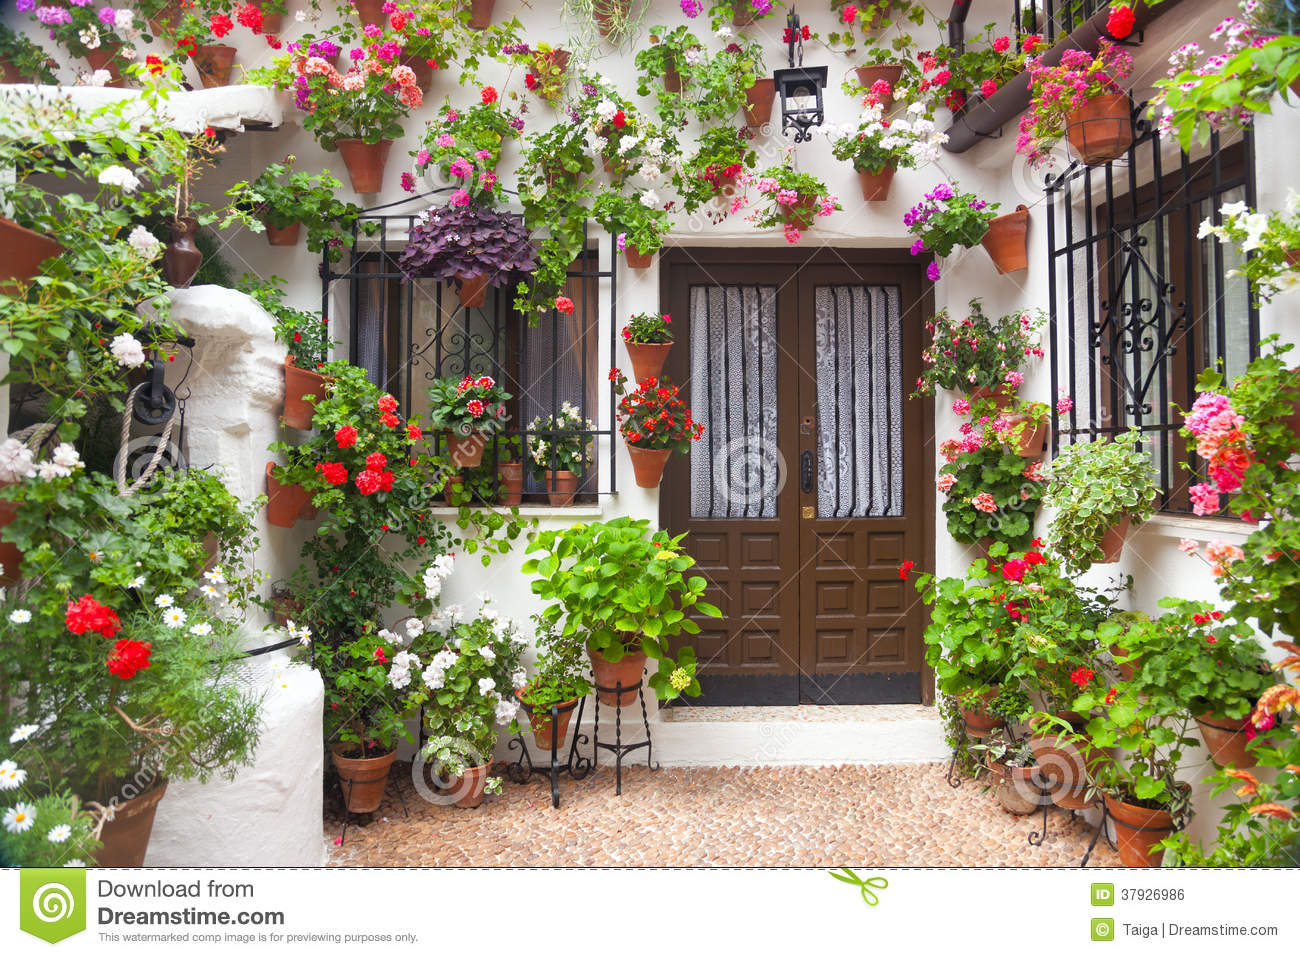 Flowers Decoration Of Vintage Courtyard Spain Europe Royalty Free Stock Image Image 37926986